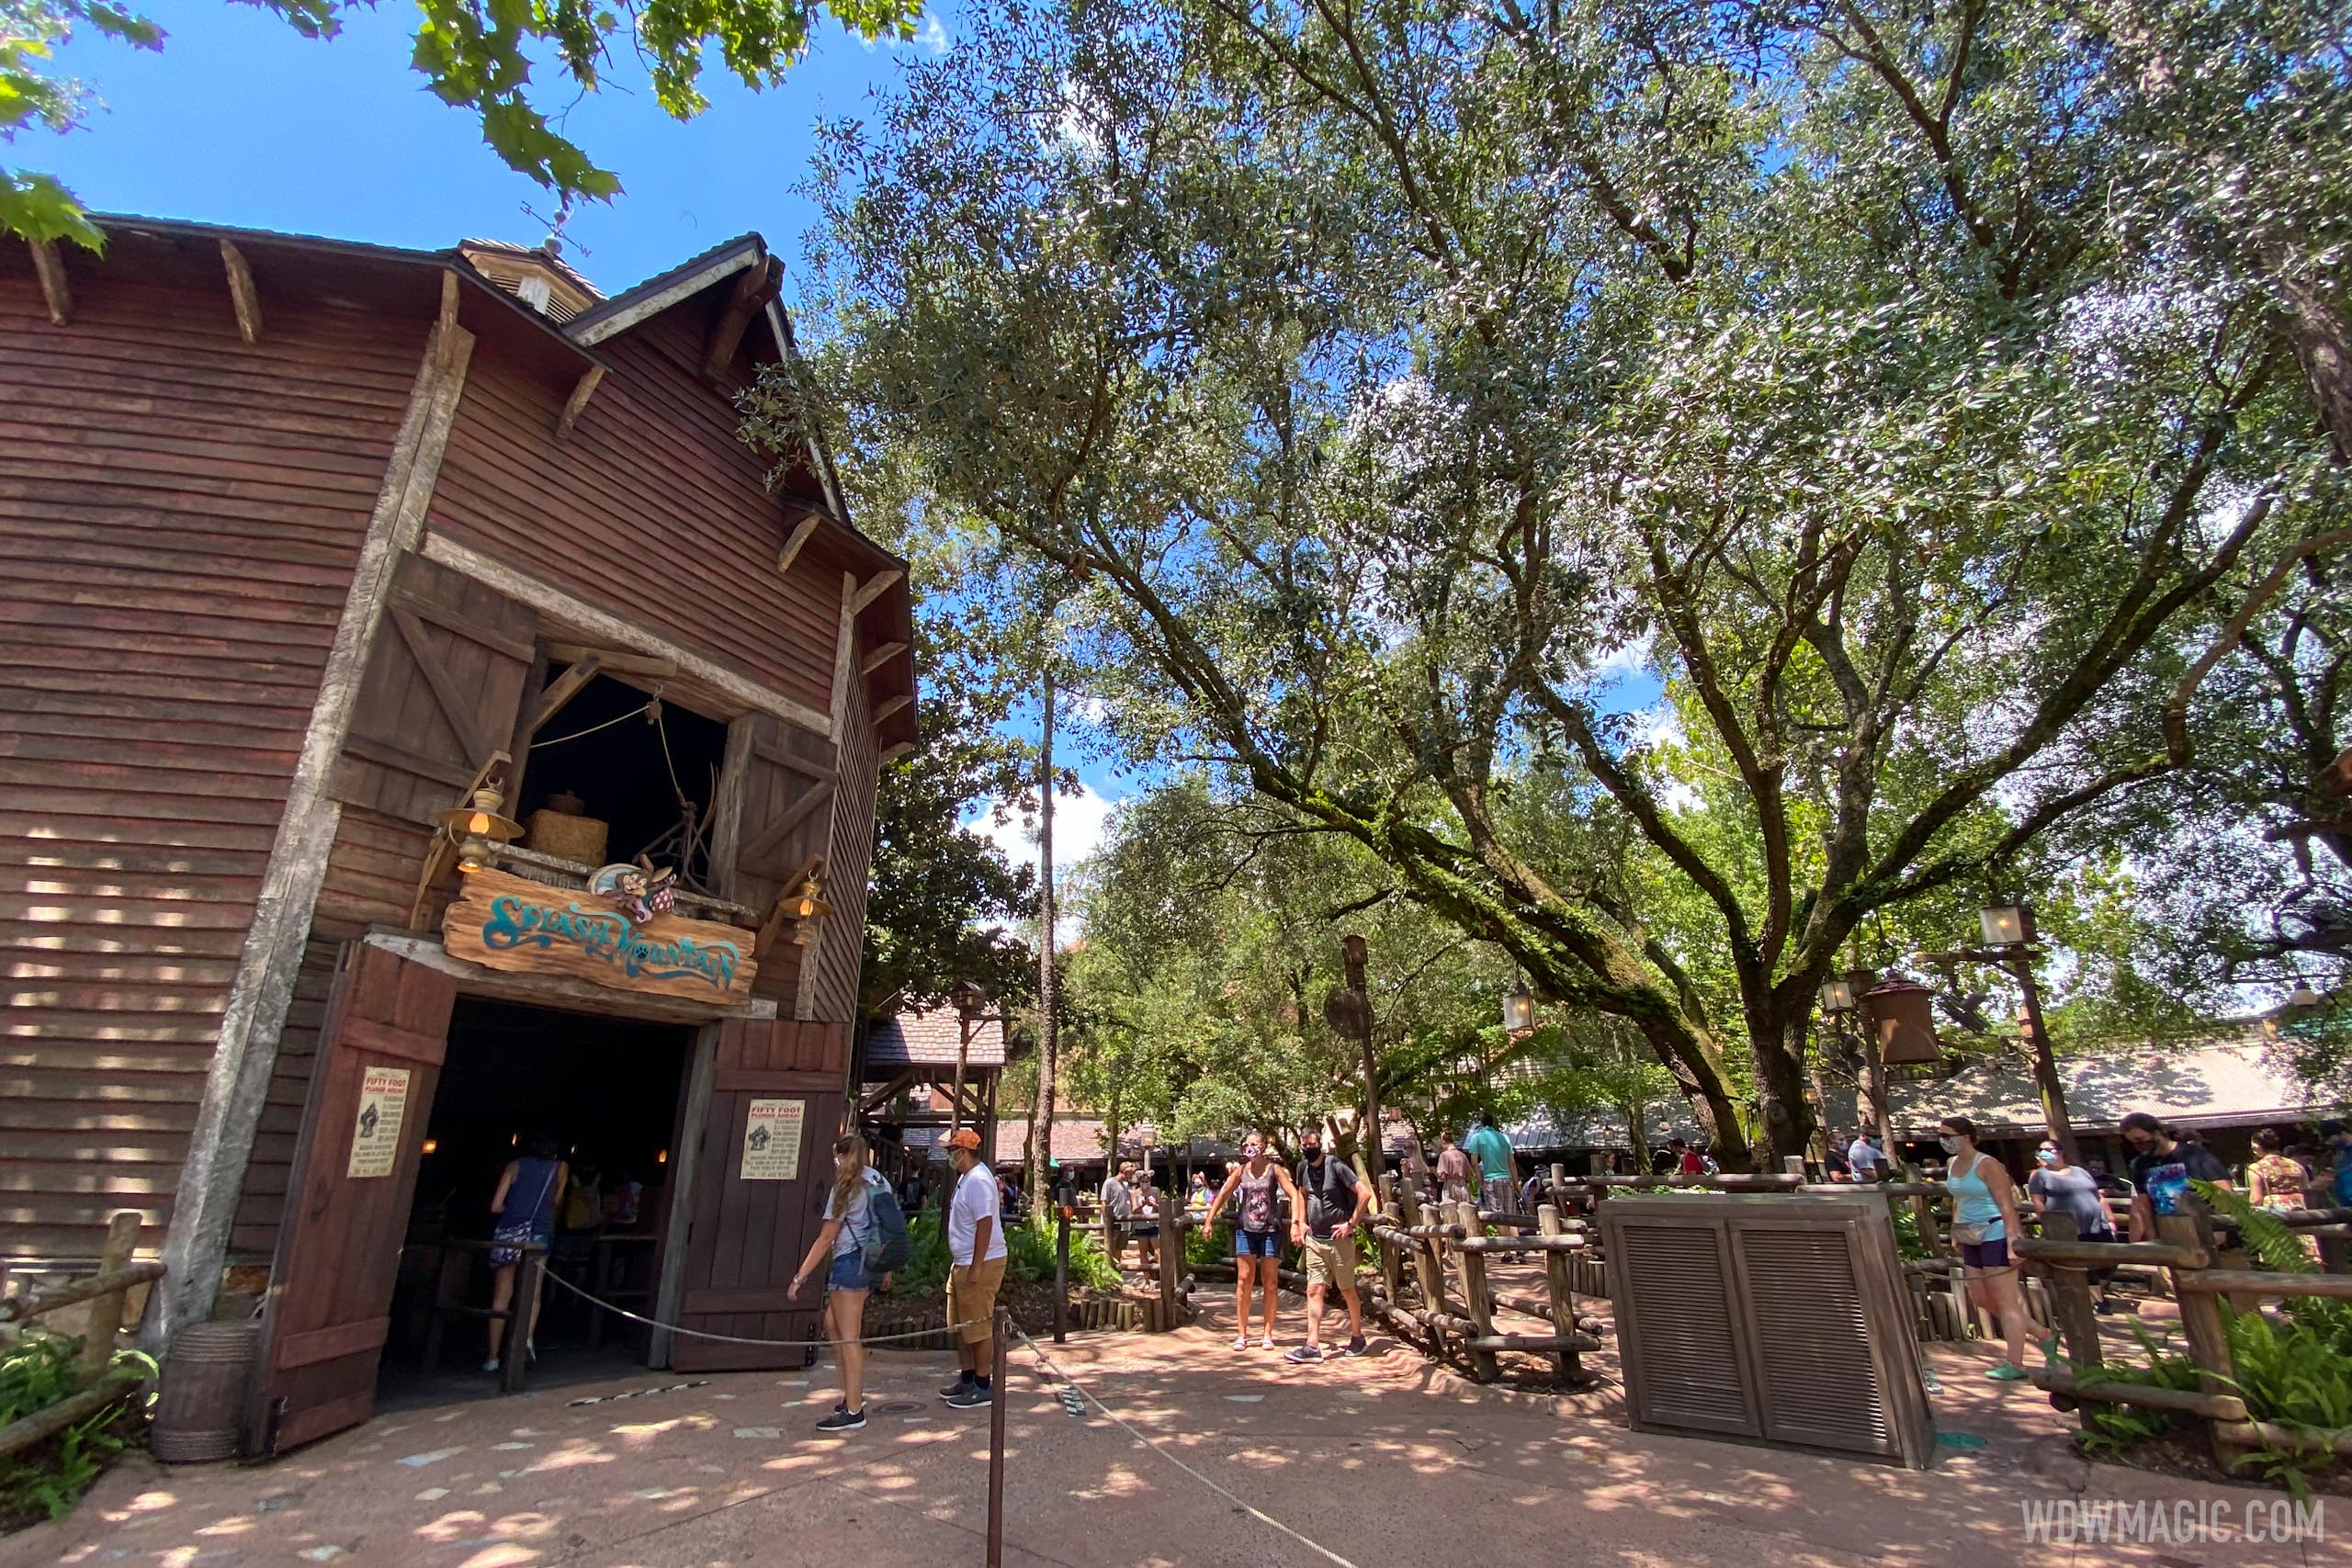 Physical distancing in line at Splash Mountain